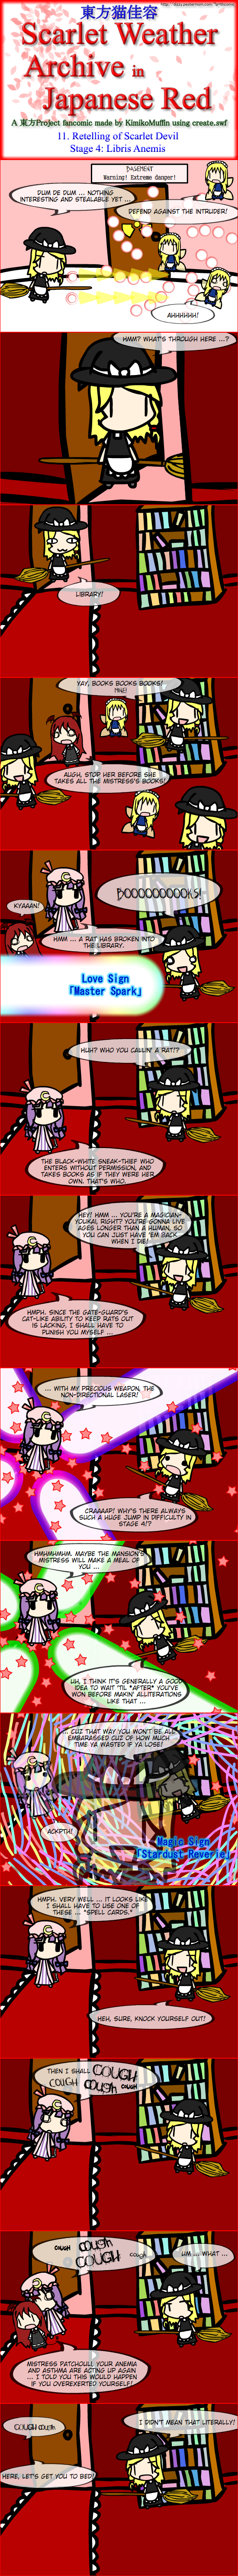 Touhou Nekokayou: Scarlet Weather Archive in Japanese Red #11